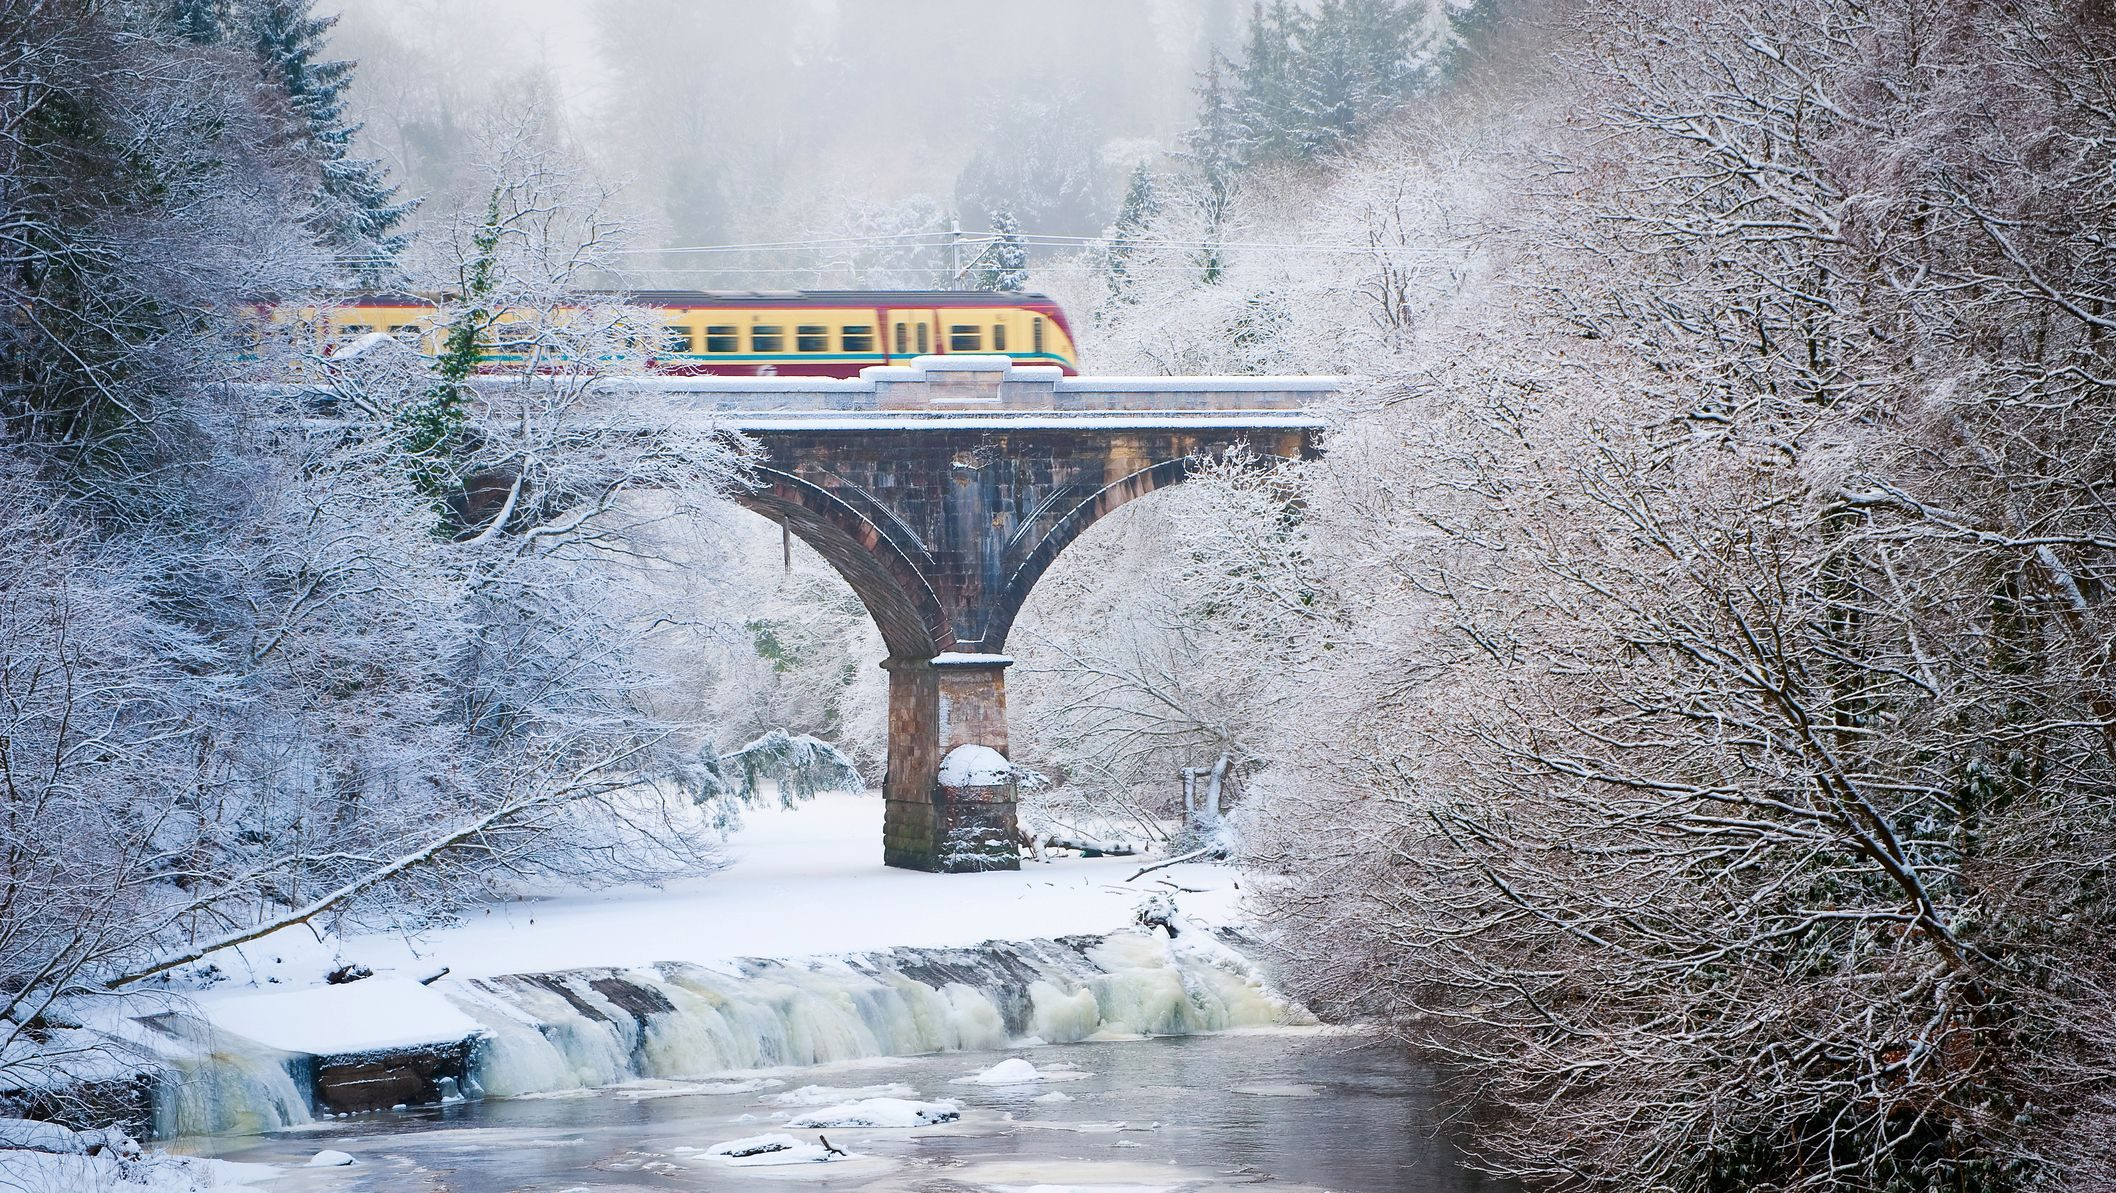 Train travel means fewer emissions and more scenery.